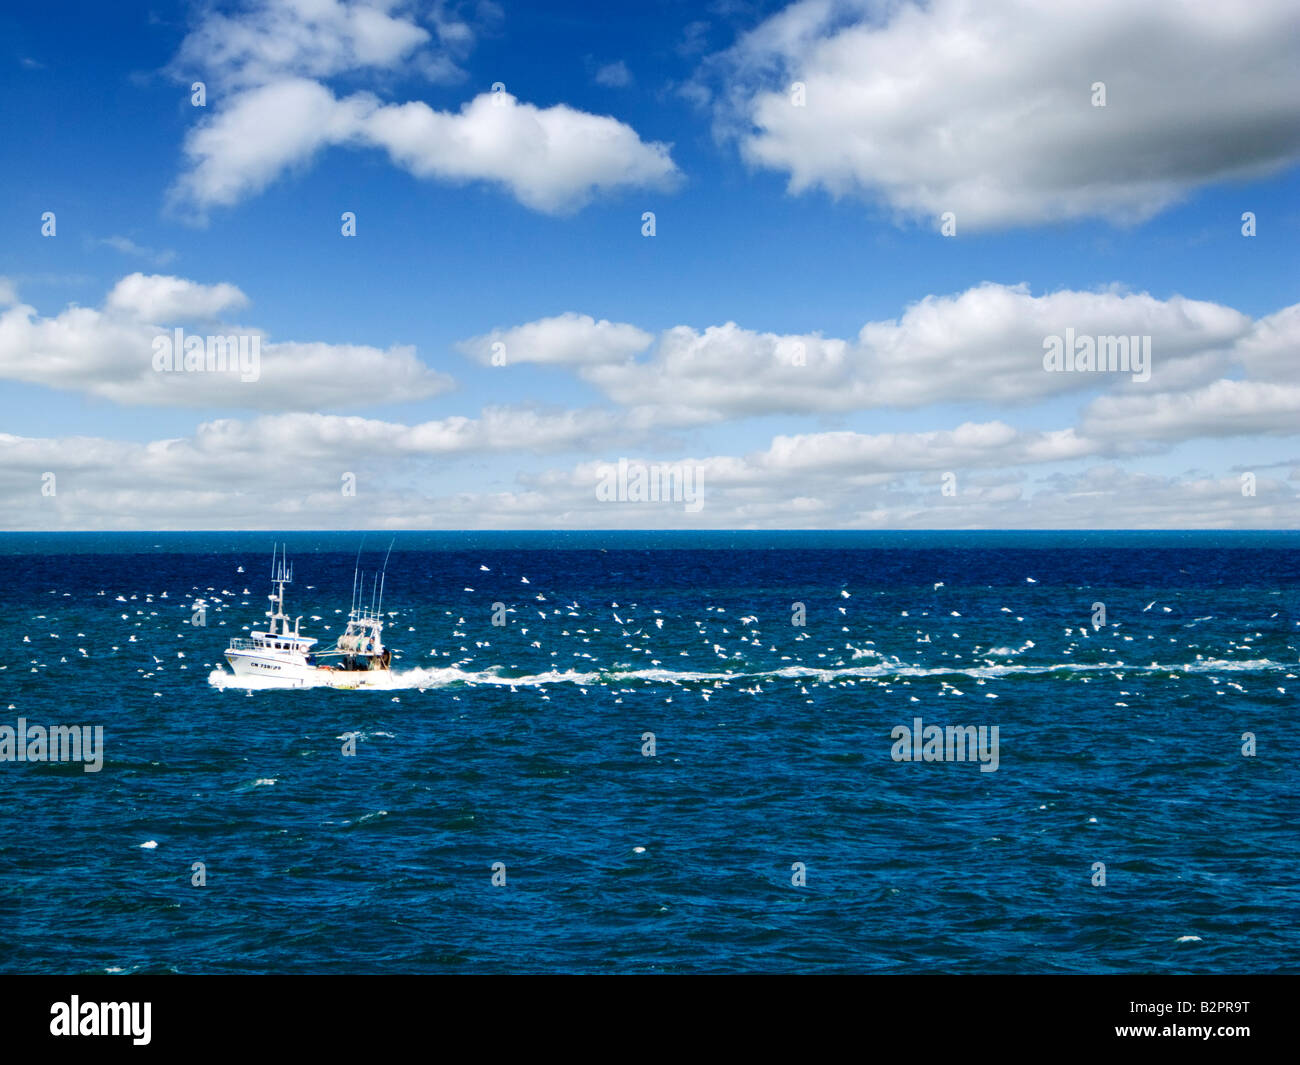 Small fishing boat trawler heading back to port with hundreds of gulls behind in his wake, Europe Stock Photo